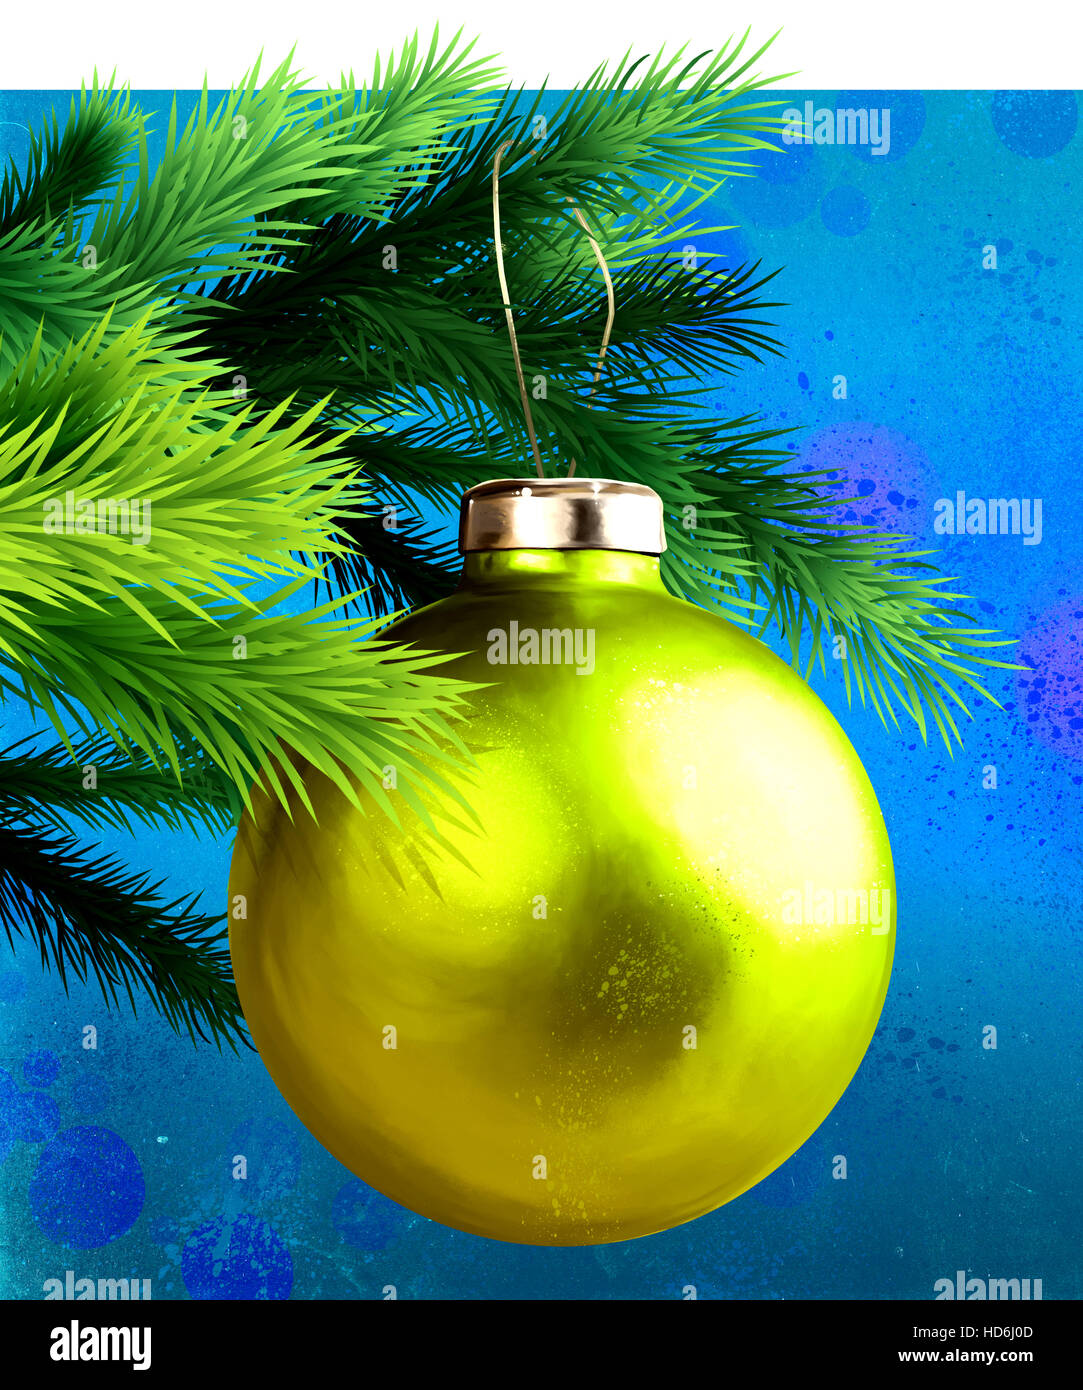 Gold bauble hanging from twig - Stock Image